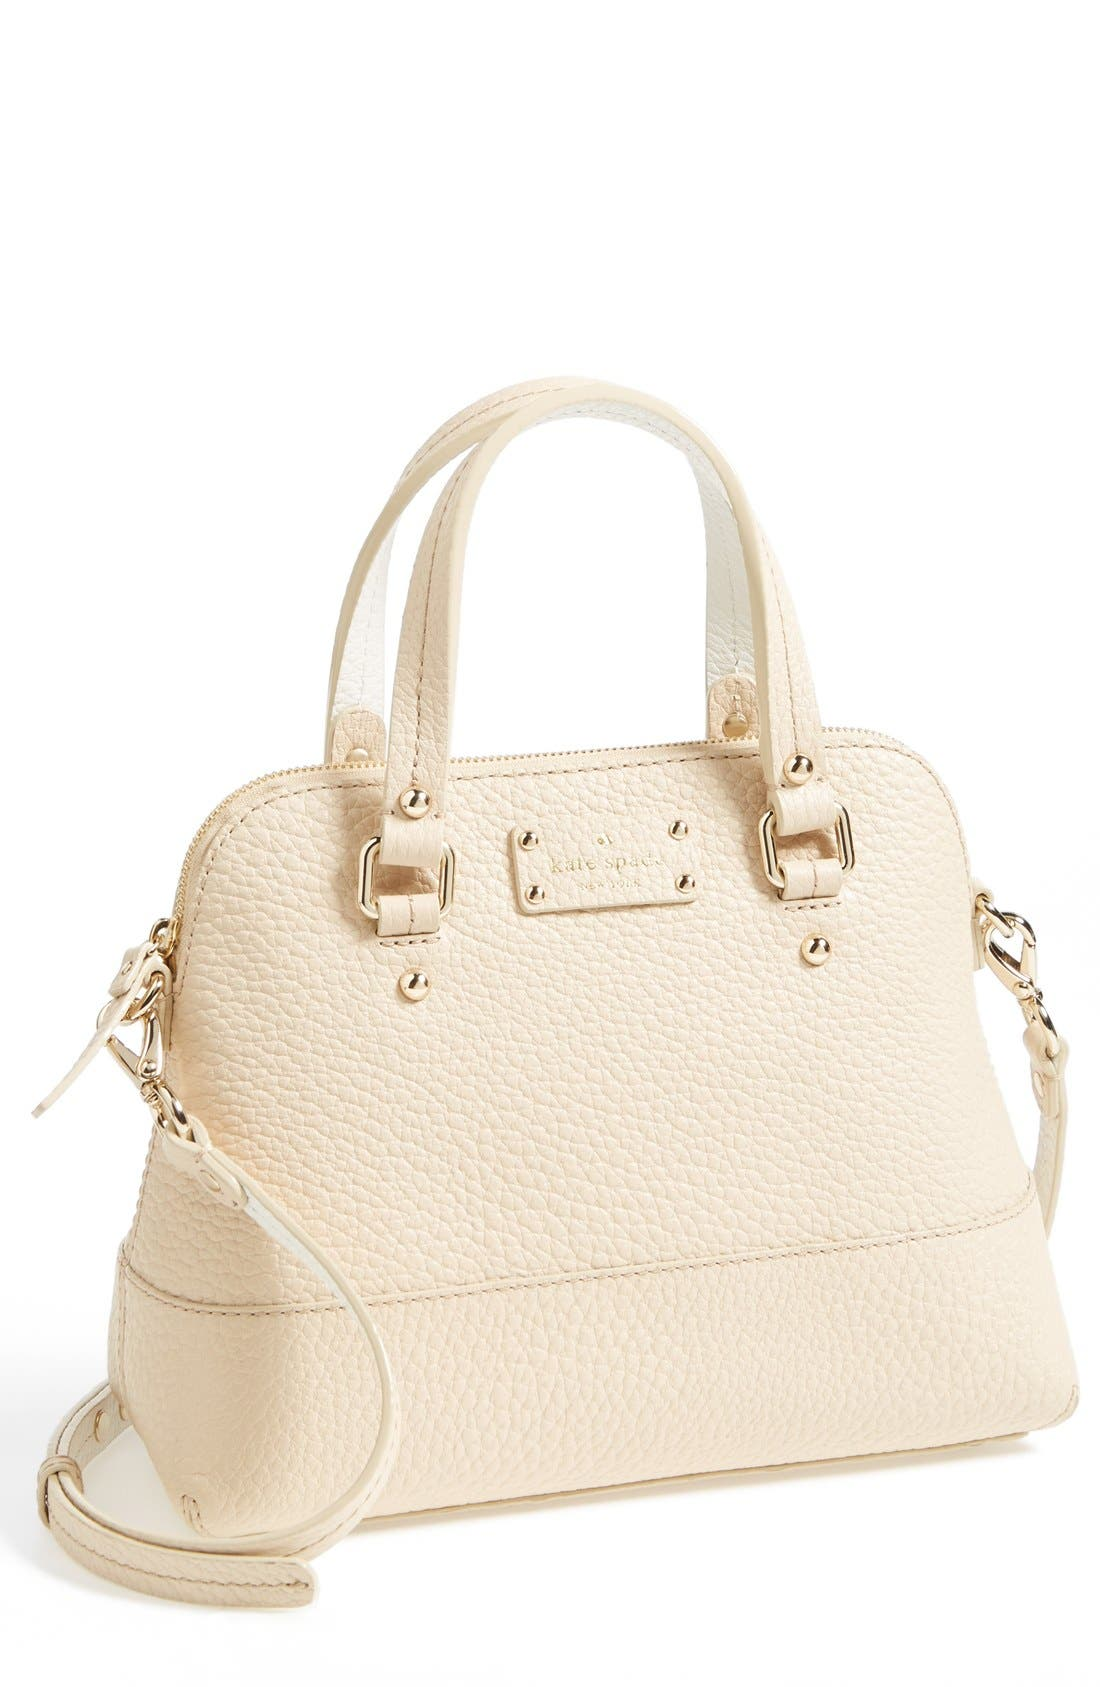 Main Image - kate spade new york 'small grove court maise' leather satchel